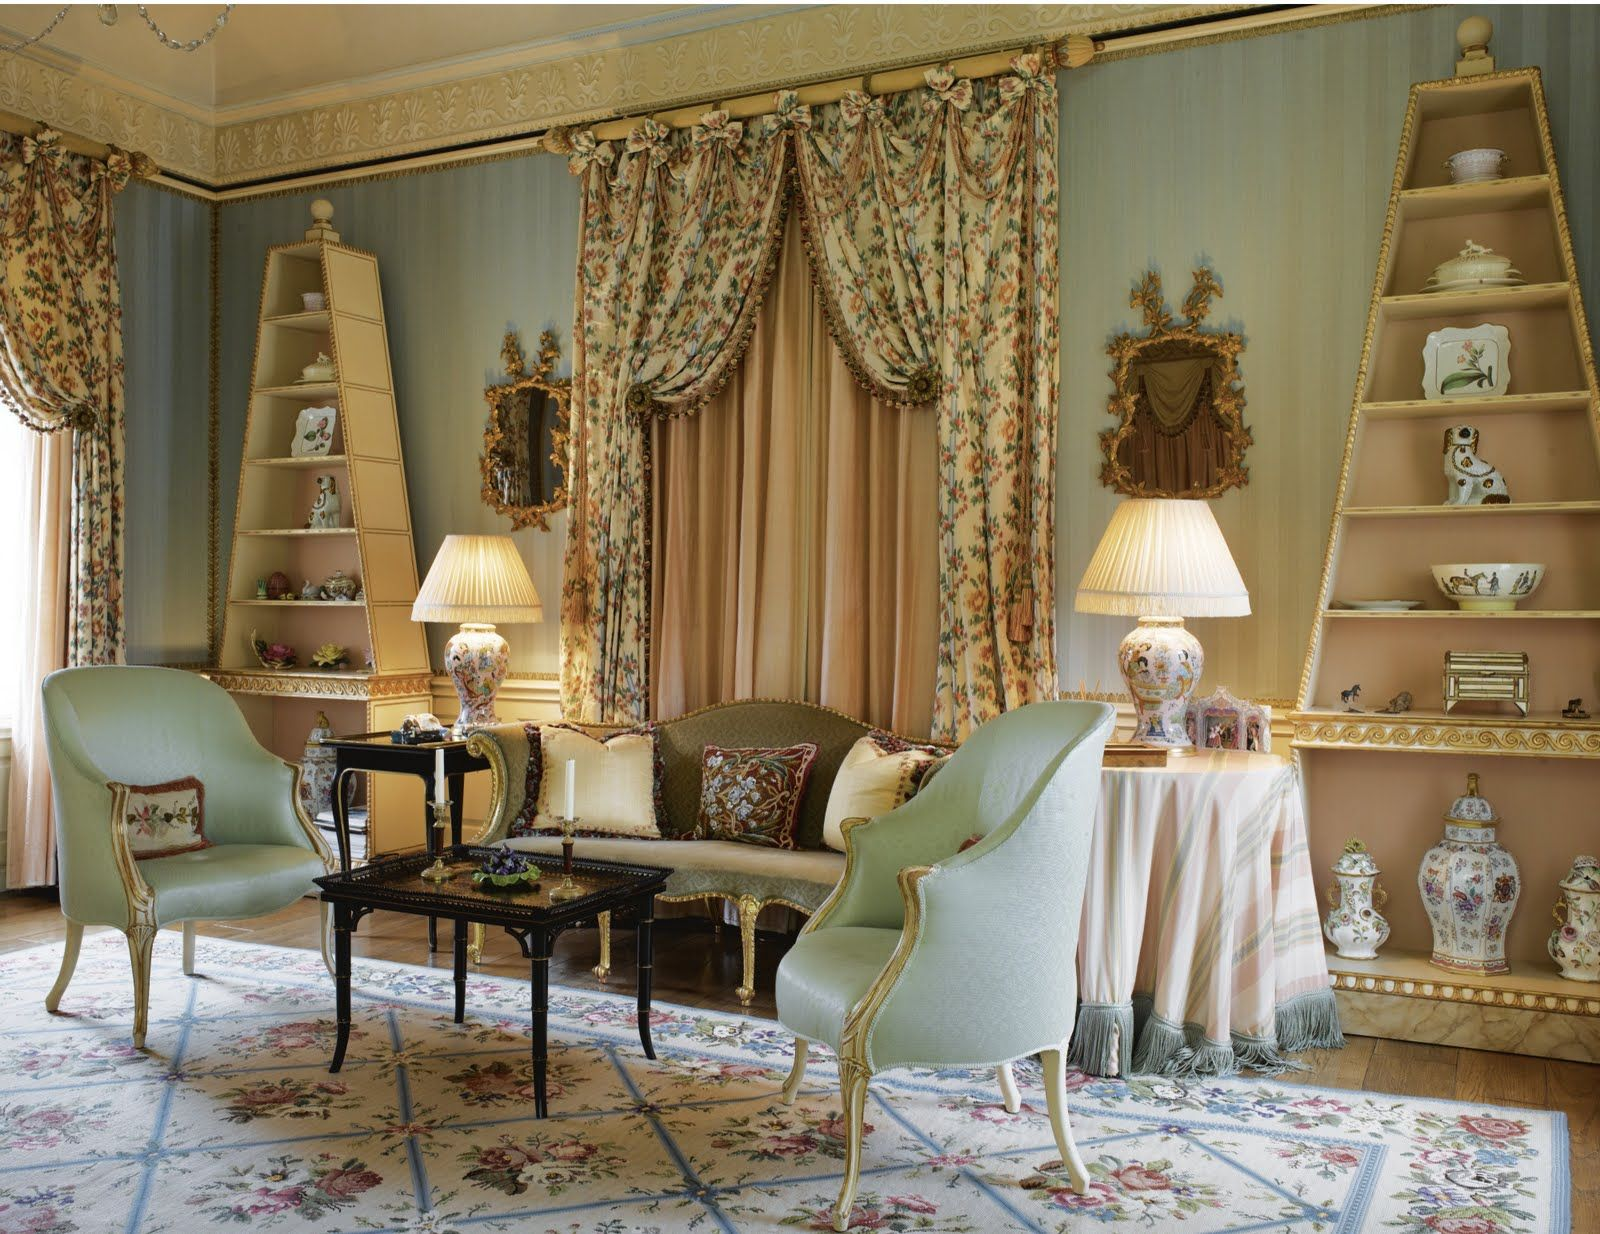 English country decorating in the hudson valley for English country design